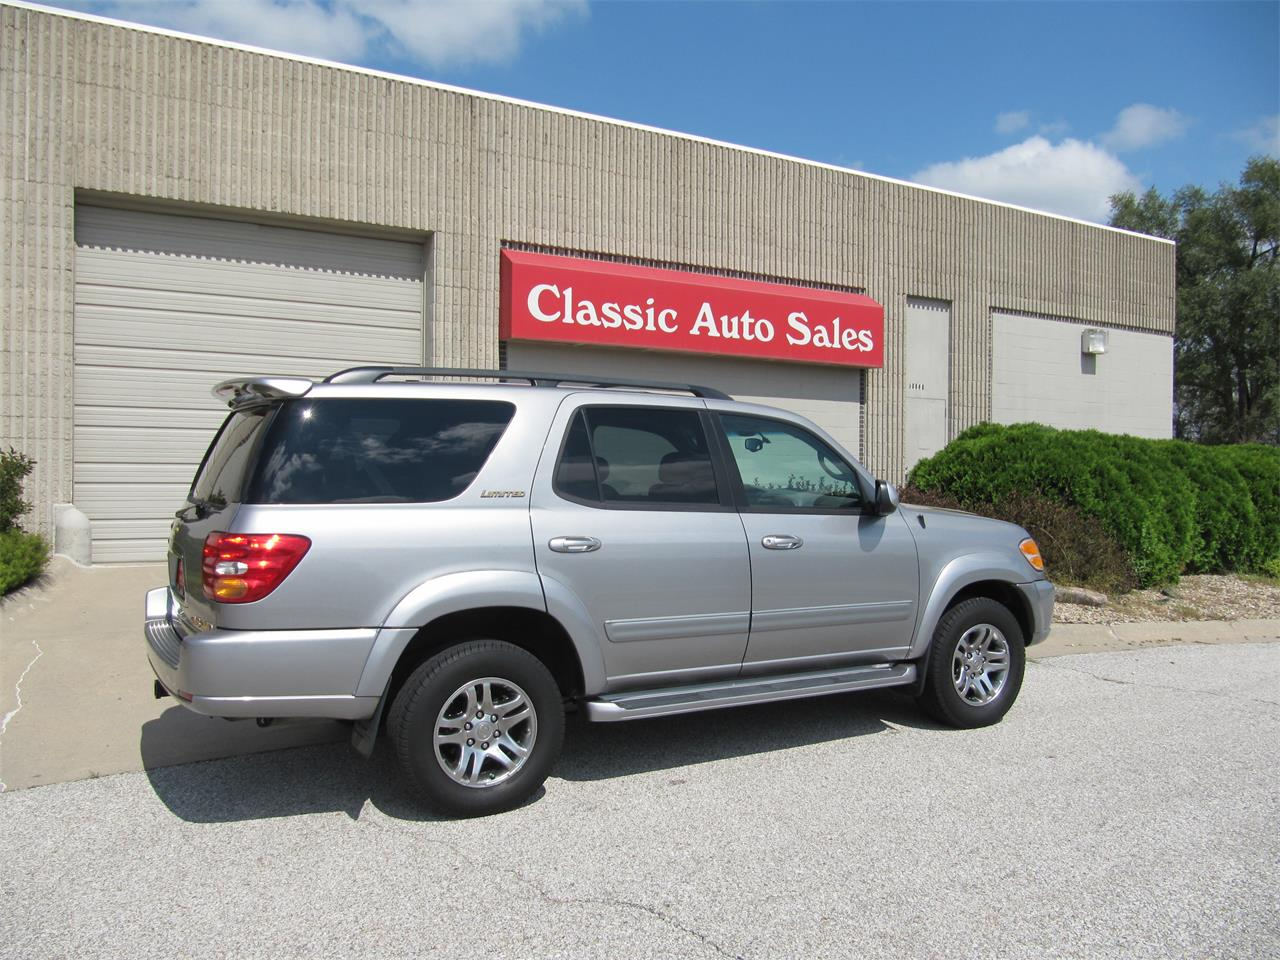 2004 Toyota Sequoia For Sale Cc 1142124 Wheels Large Picture Of 04 Oh9o